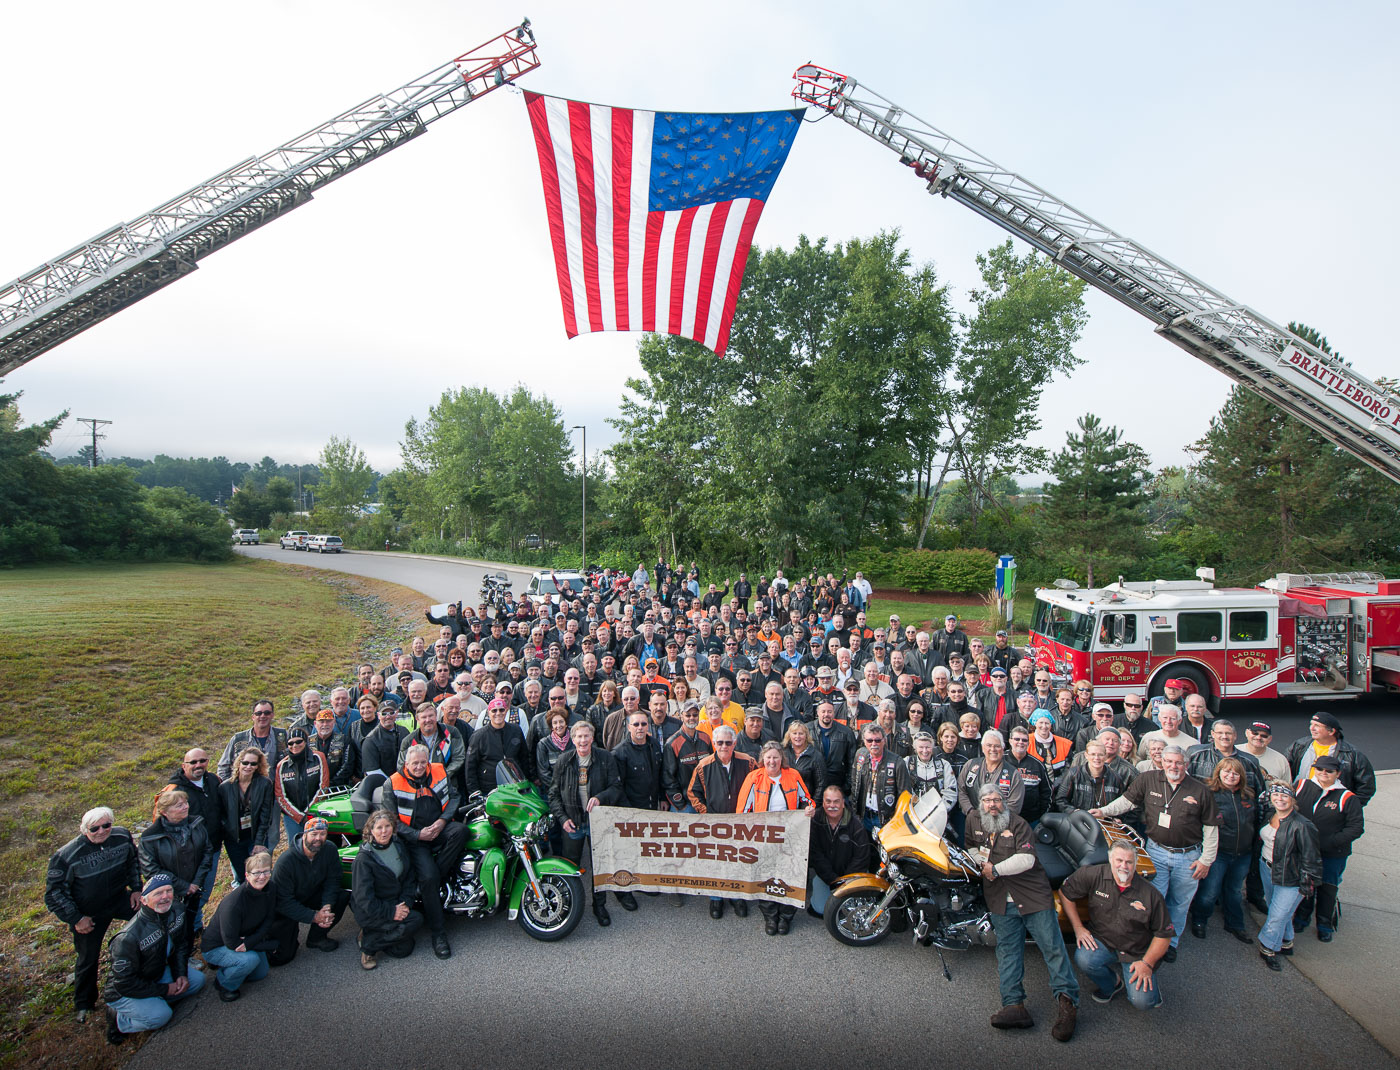 TRAILBLAZER - The New England Trailblazer was Harley-Davidson's Official 2014 H.O.G.® Touring Rally - conceptualised, organised and delivered by Saddle Tramp. Over 230 riders completed the 1,300 mile route route through Vermont, Maine, and New Hampshire, riding from red barns and covered bridges through untamed wilderness and outstanding natural beauty to the remote and rugged coastline found at the most easterly point of the mainland United States. Highlights included a sensational send off from the Brattleboro Police and Fire Departments, a spectacular firework display on Sugarloaf mountain, a moving remembrance service and flag ceremony in Bangor on 9/11 and a sensational closing night party beneath the wings of a fighter jet in Concord NH.